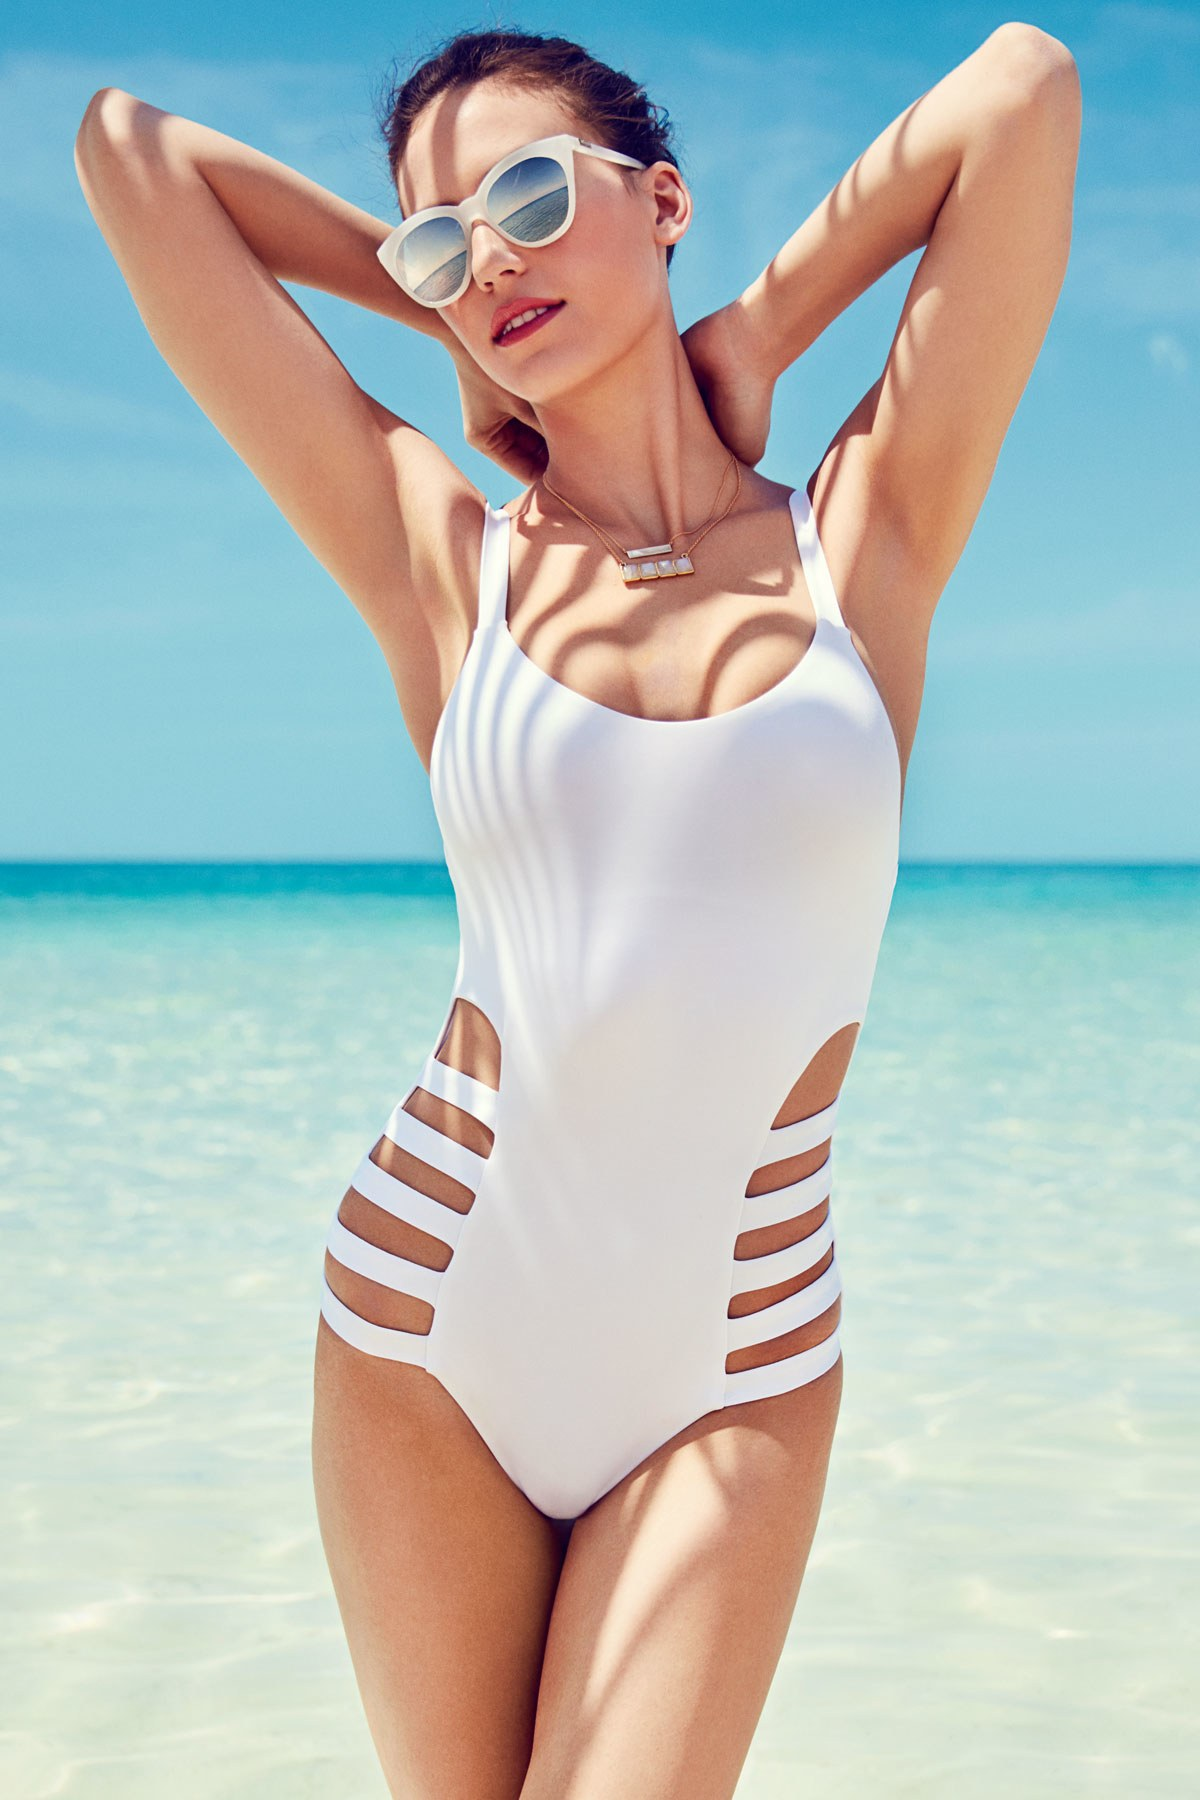 Benefits Of Having White SwimSuit